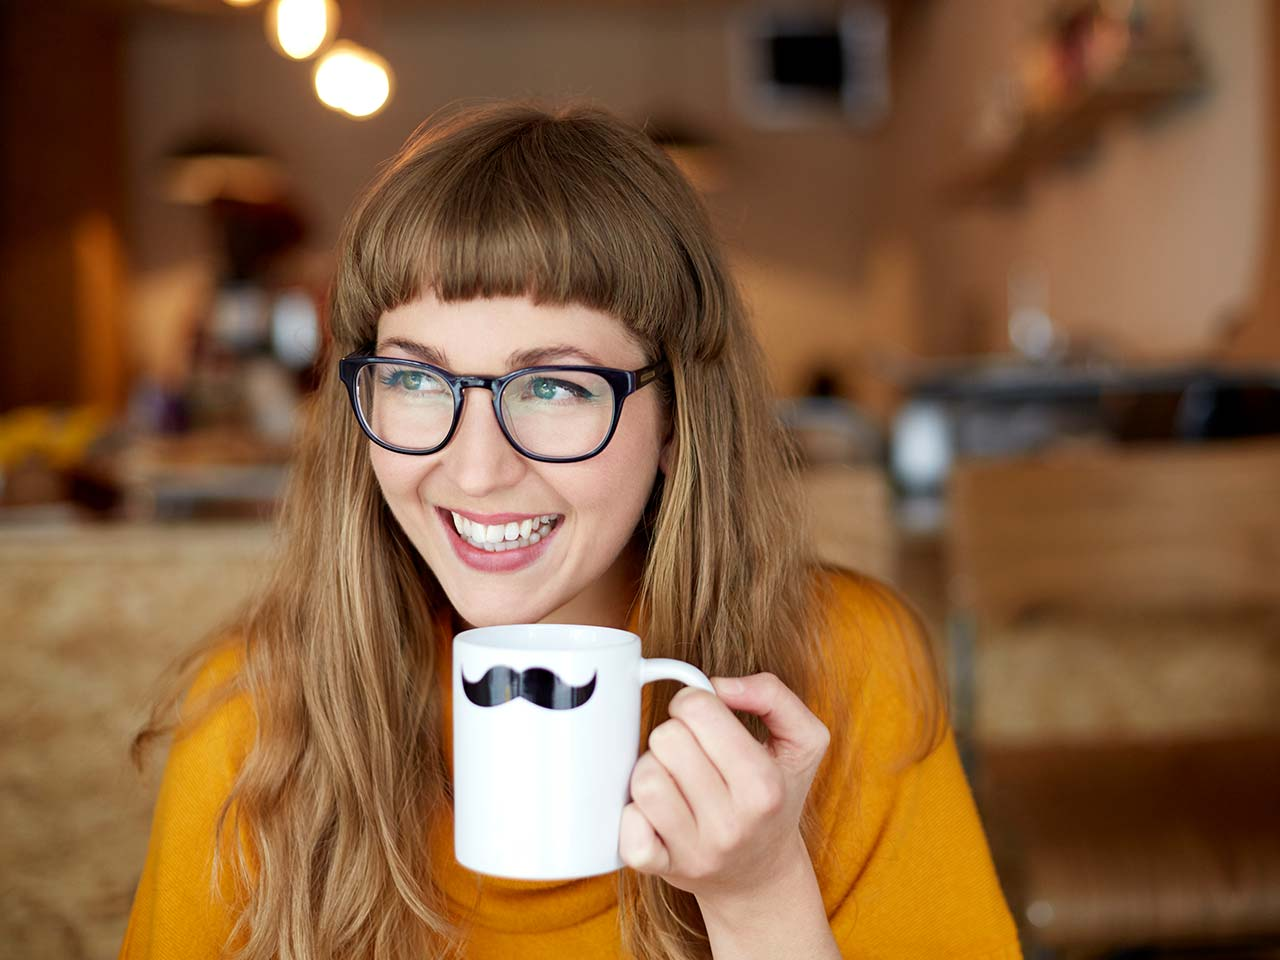 Red headed girl with glasses smiling and holding a coffee mug with a tiny mustache on it